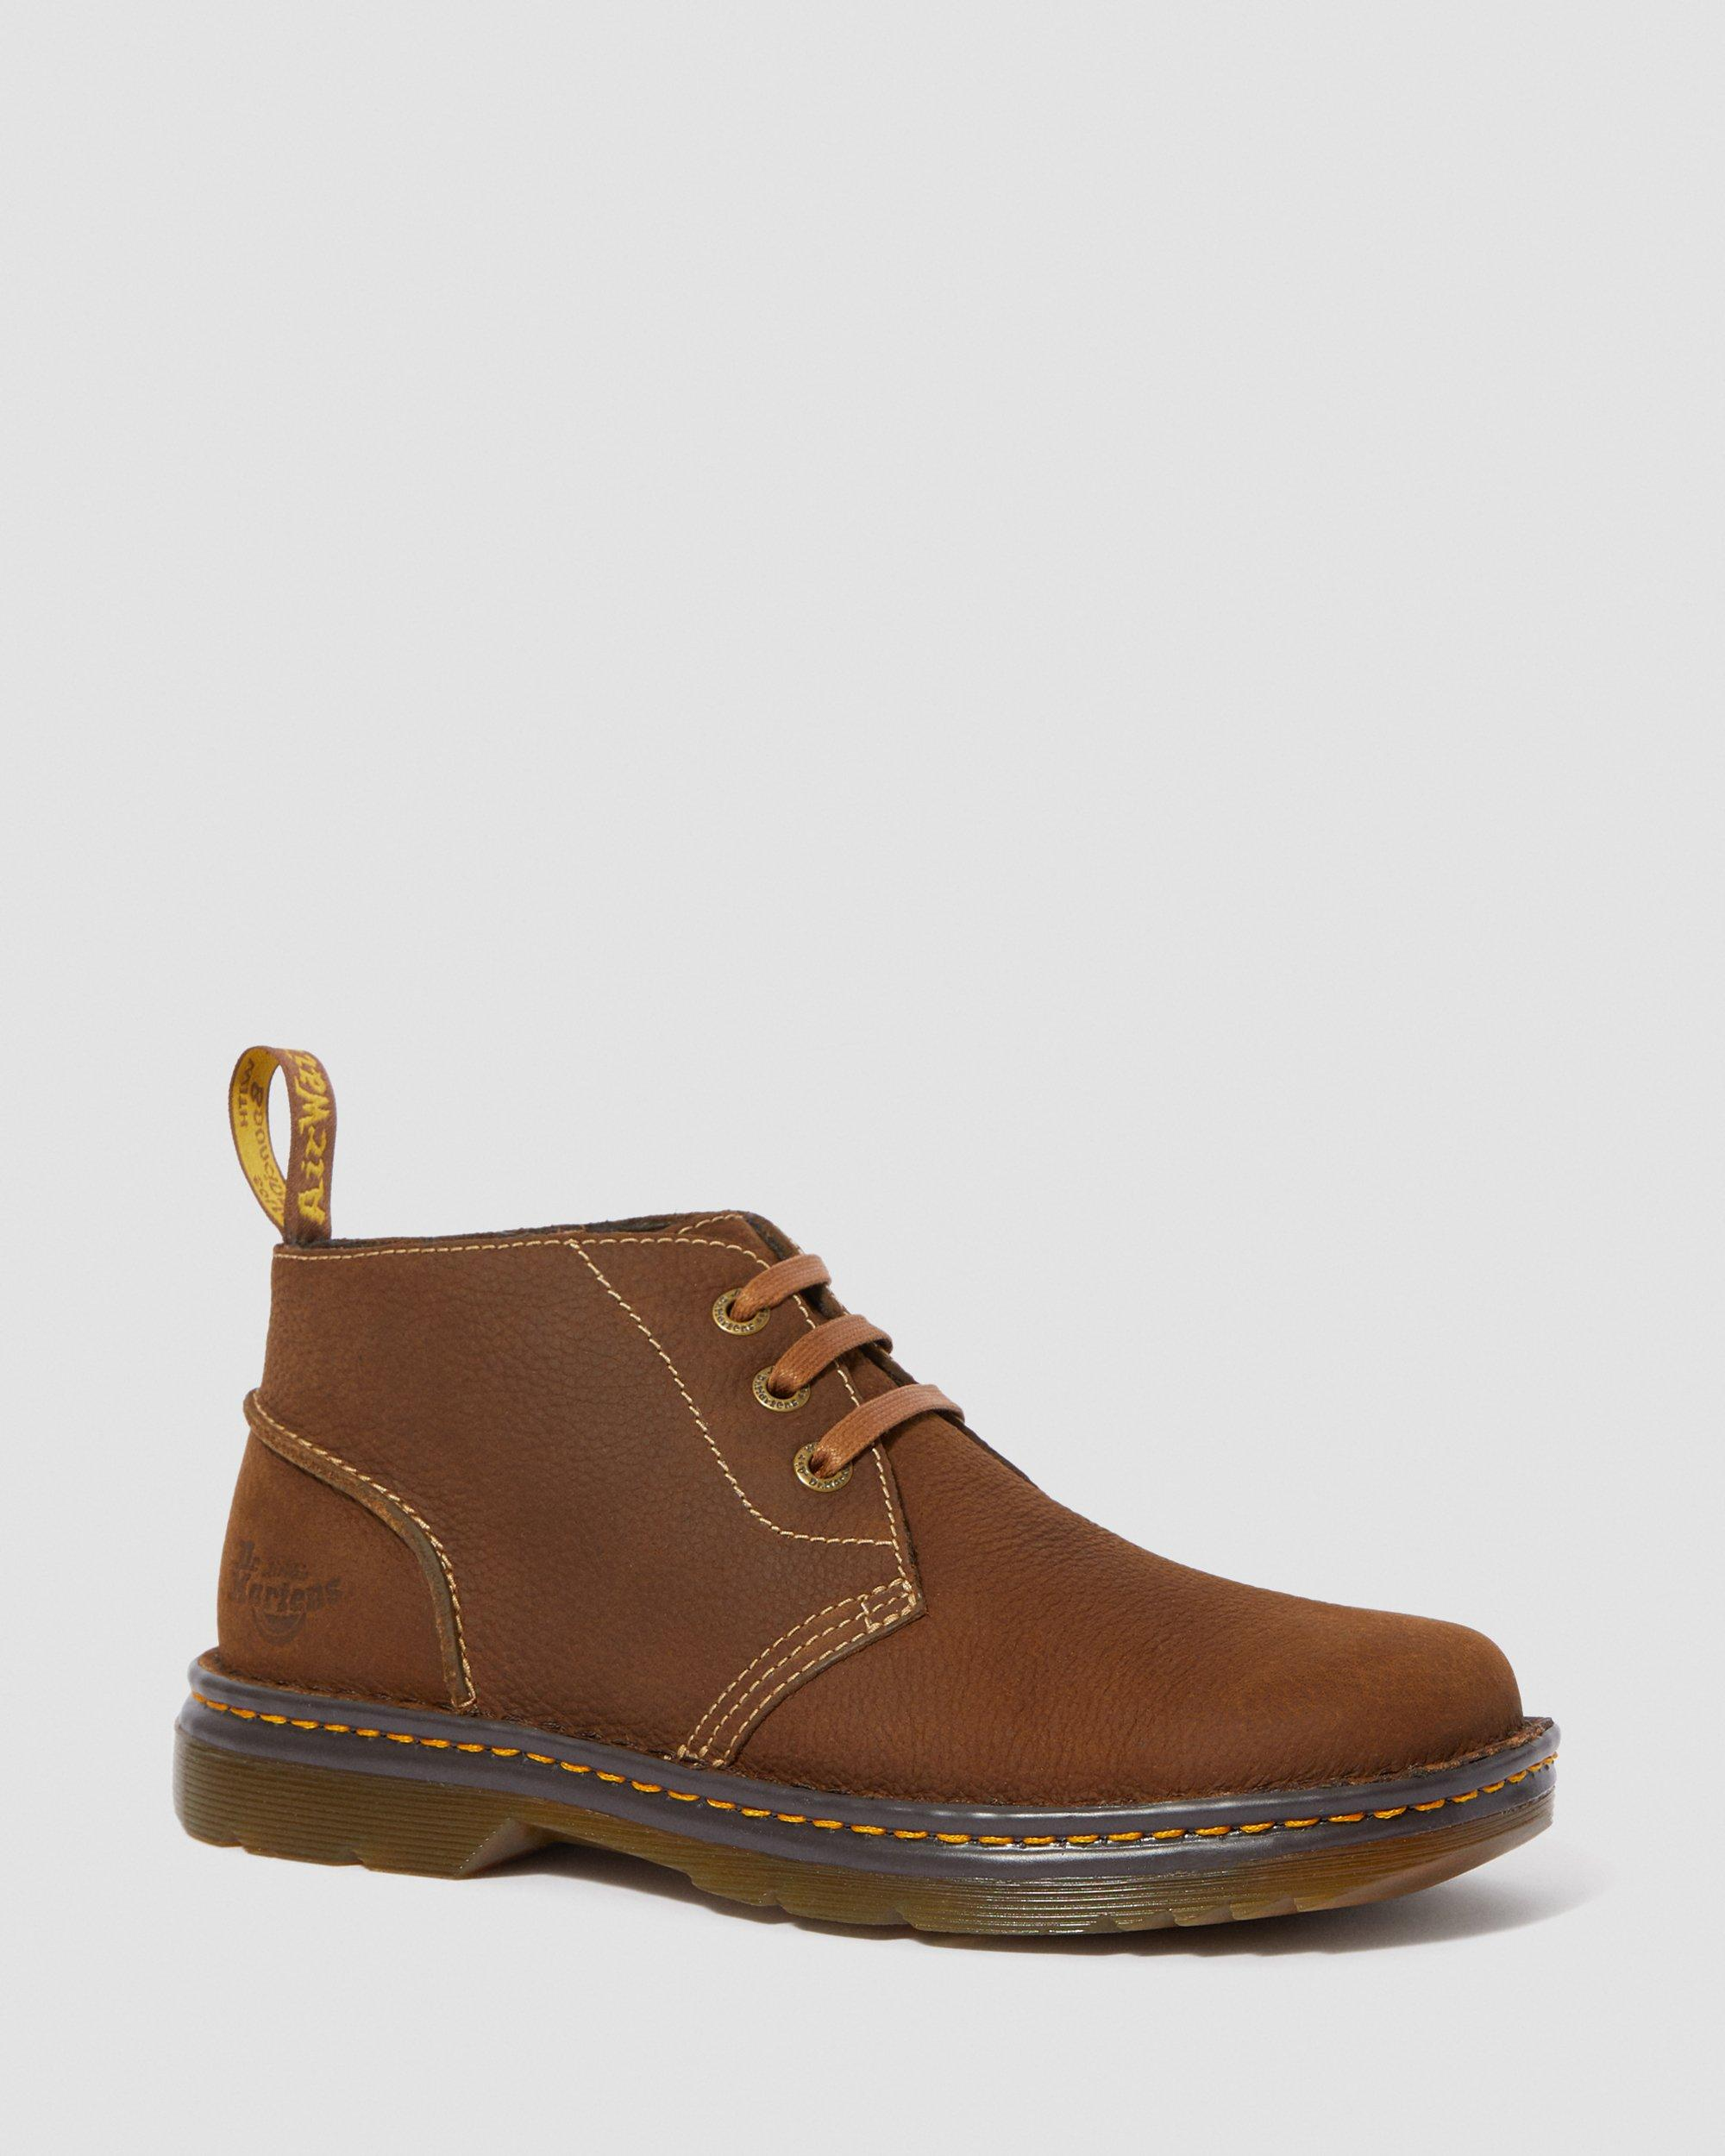 SUSSEX SLIP RESISTANT CHUKKA BOOTS | Dr